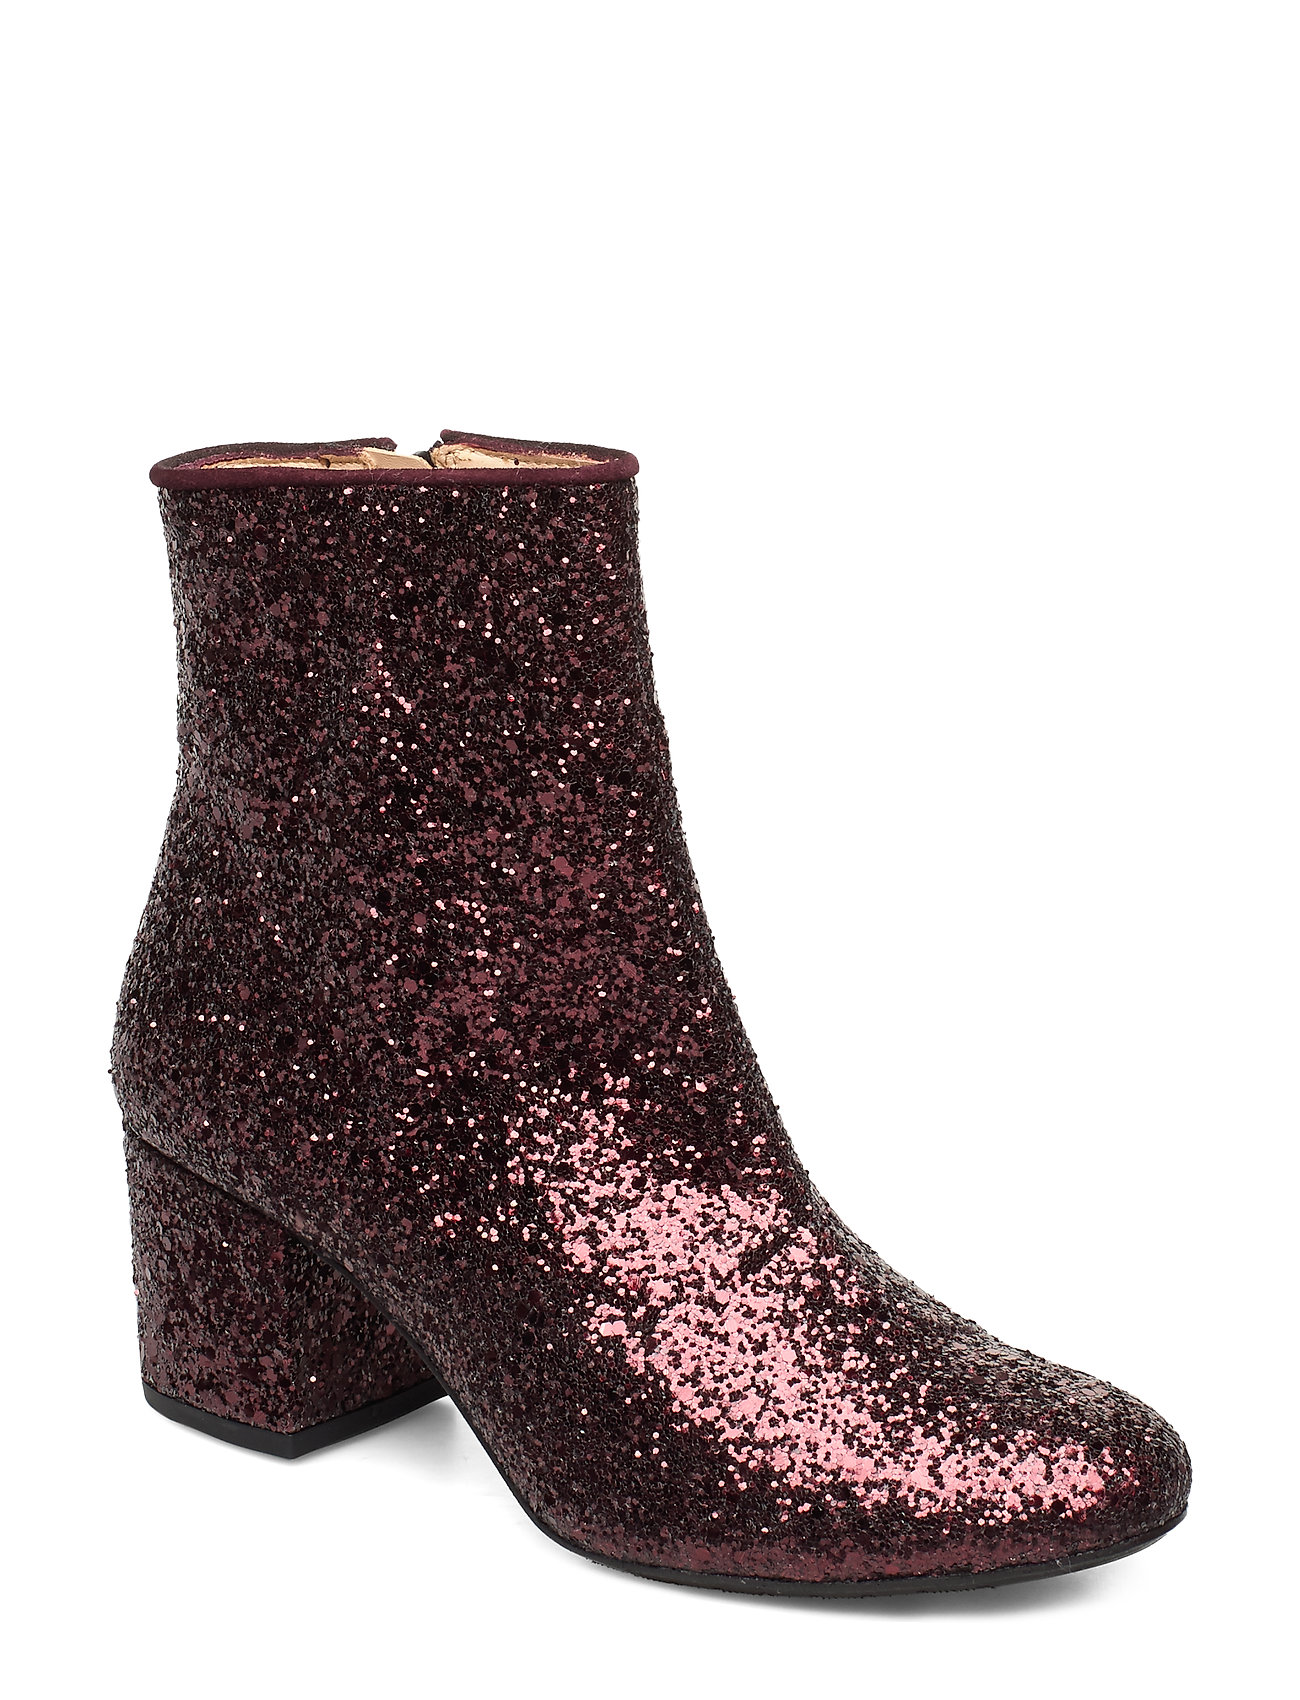 Image of Bootie - Block Heel - With Zippe Shoes Boots Ankle Boots Ankle Boot - Heel Rød ANGULUS (3406215935)